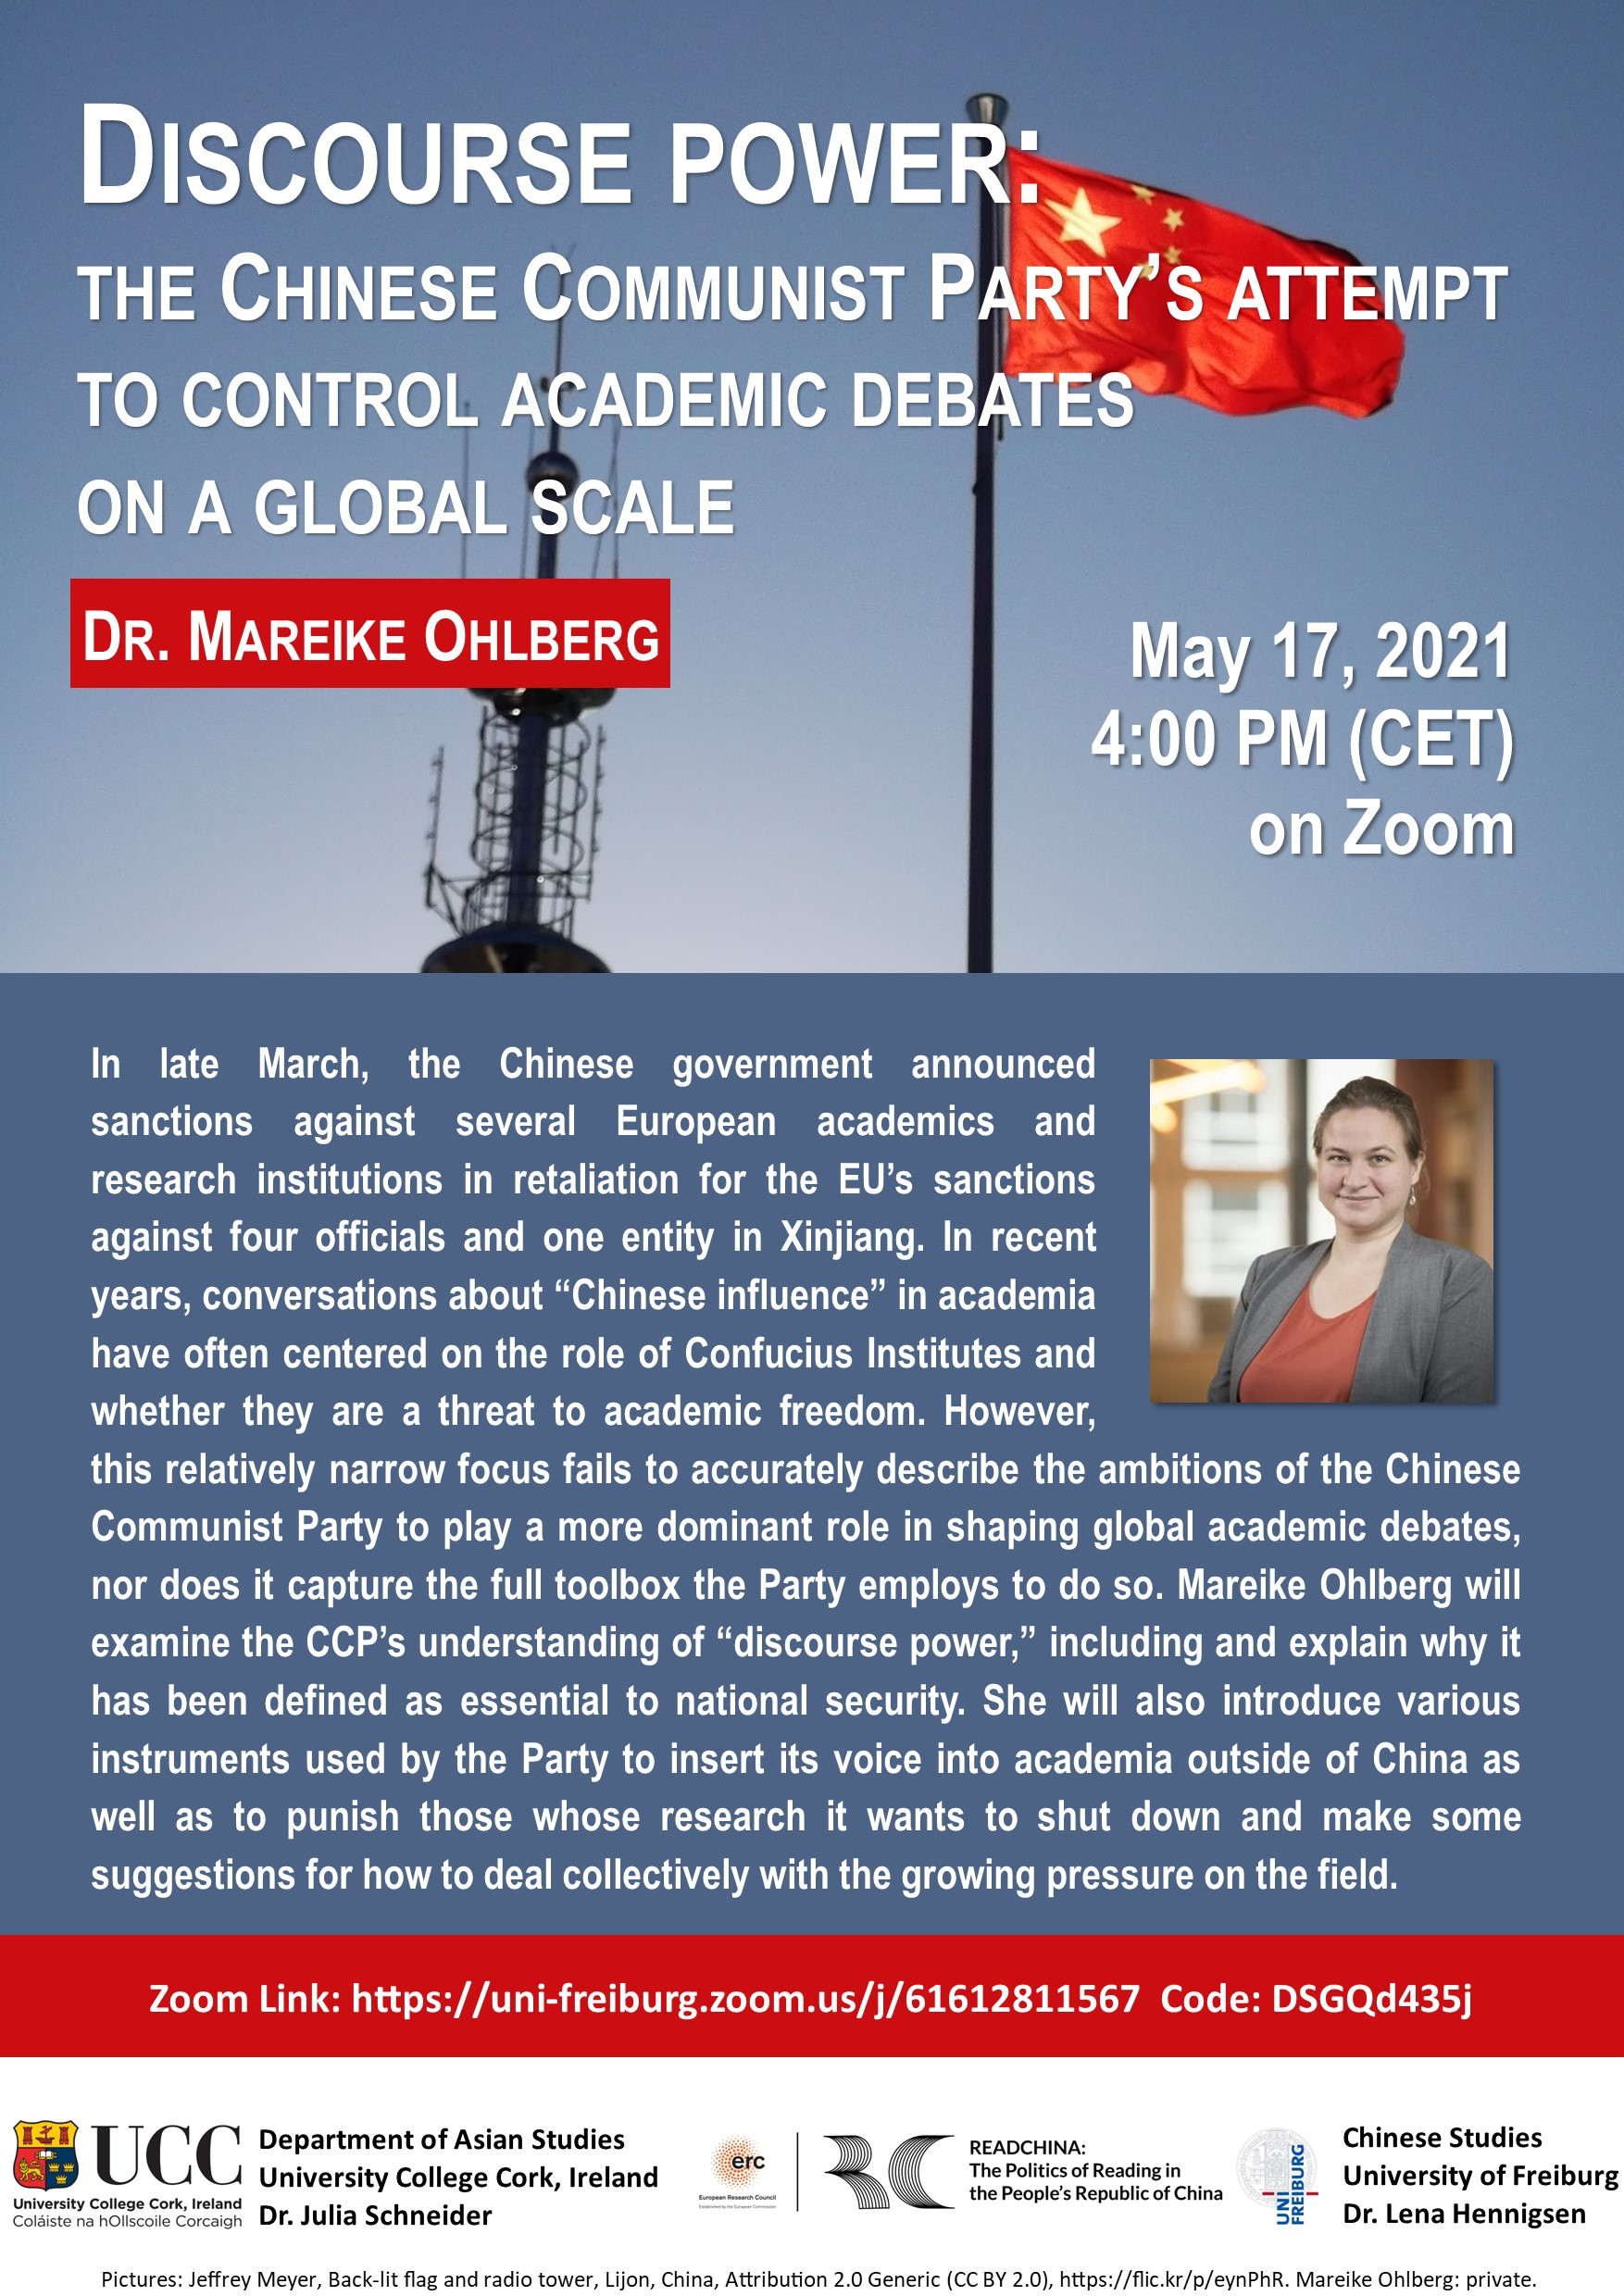 Vortrag: Discourse Power: The Chinese Communist Party's Attempt to Control Academic Debates on a Global Scale